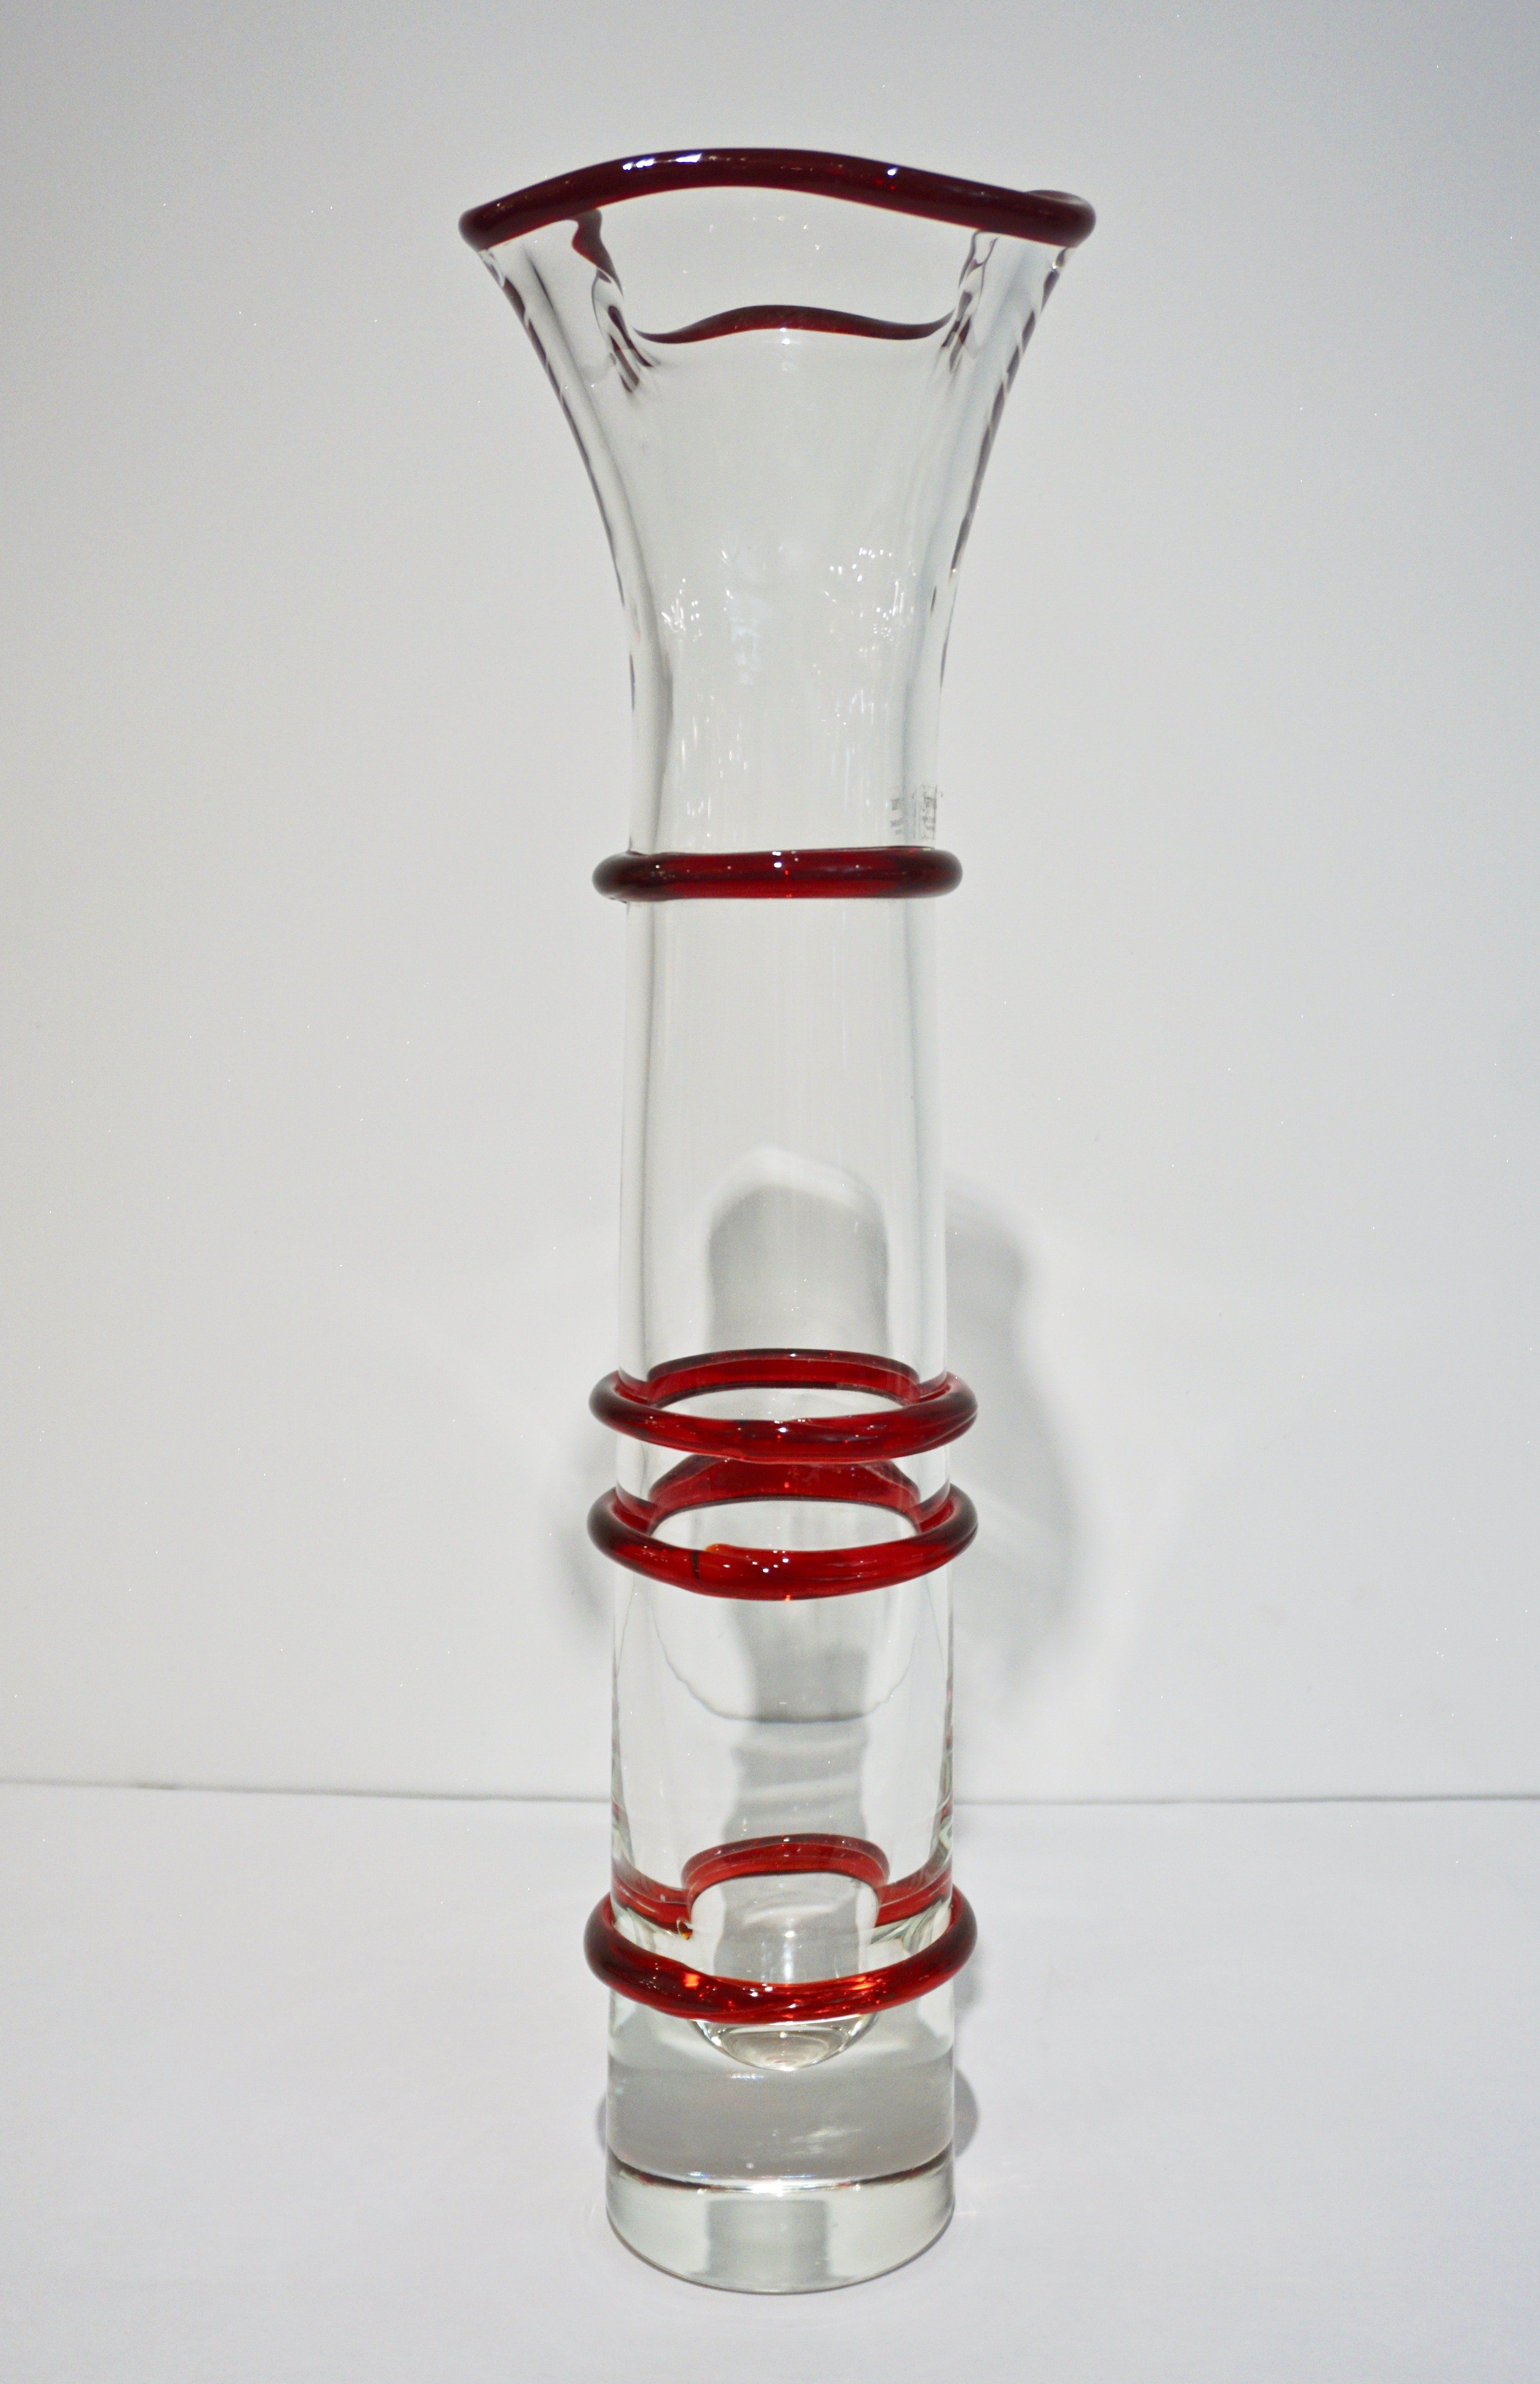 steuben glass vase vintage of baccarat crystal vase luxury formia italian 1970s two white red regarding baccarat crystal vase luxury formia italian 1970s two white red crystal clear murano glass tall